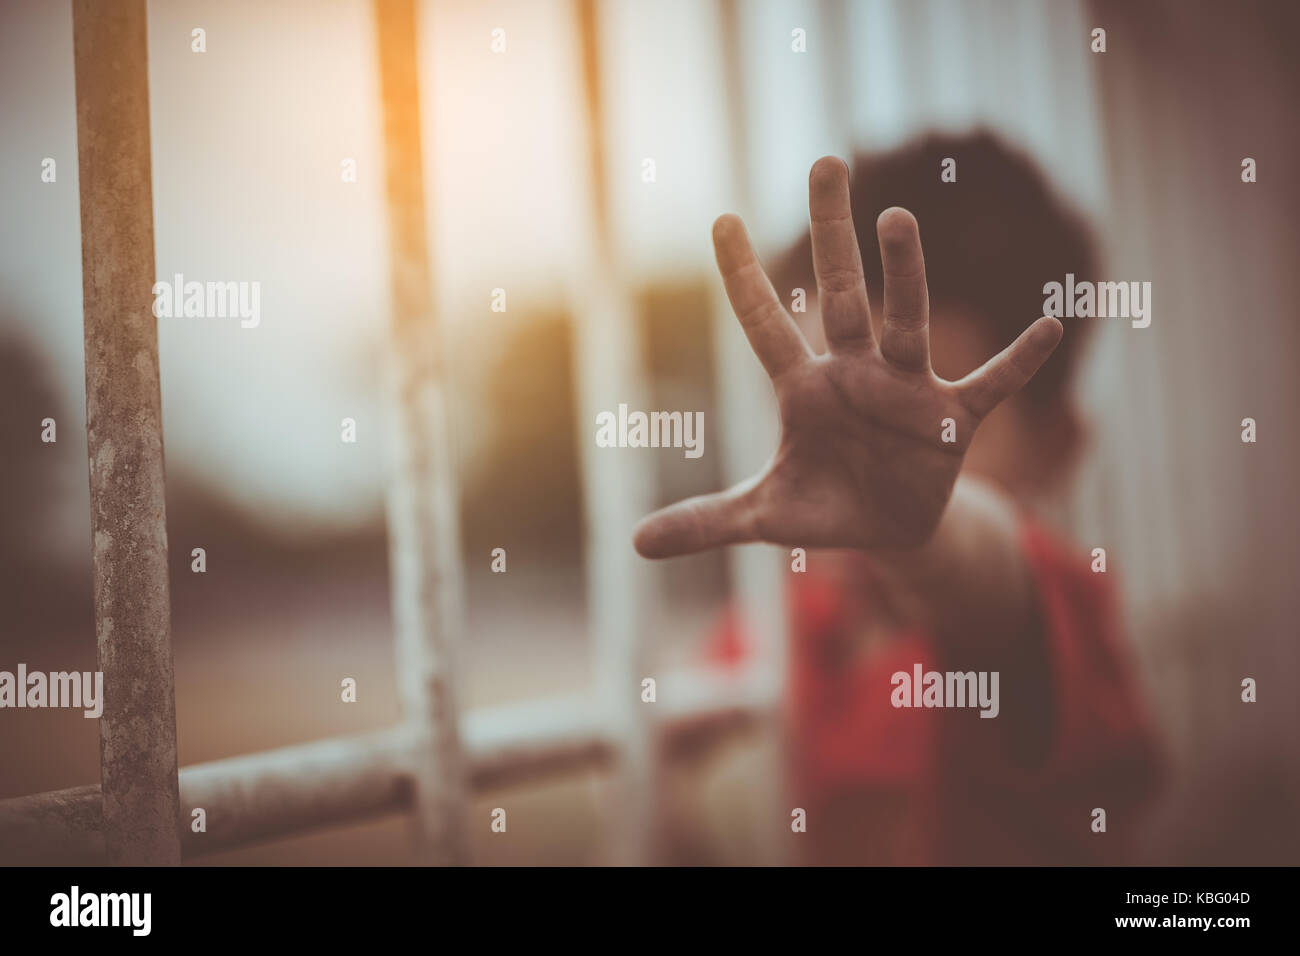 Children trafficking and vtrafficking concept.,focus blur. Stock Photo